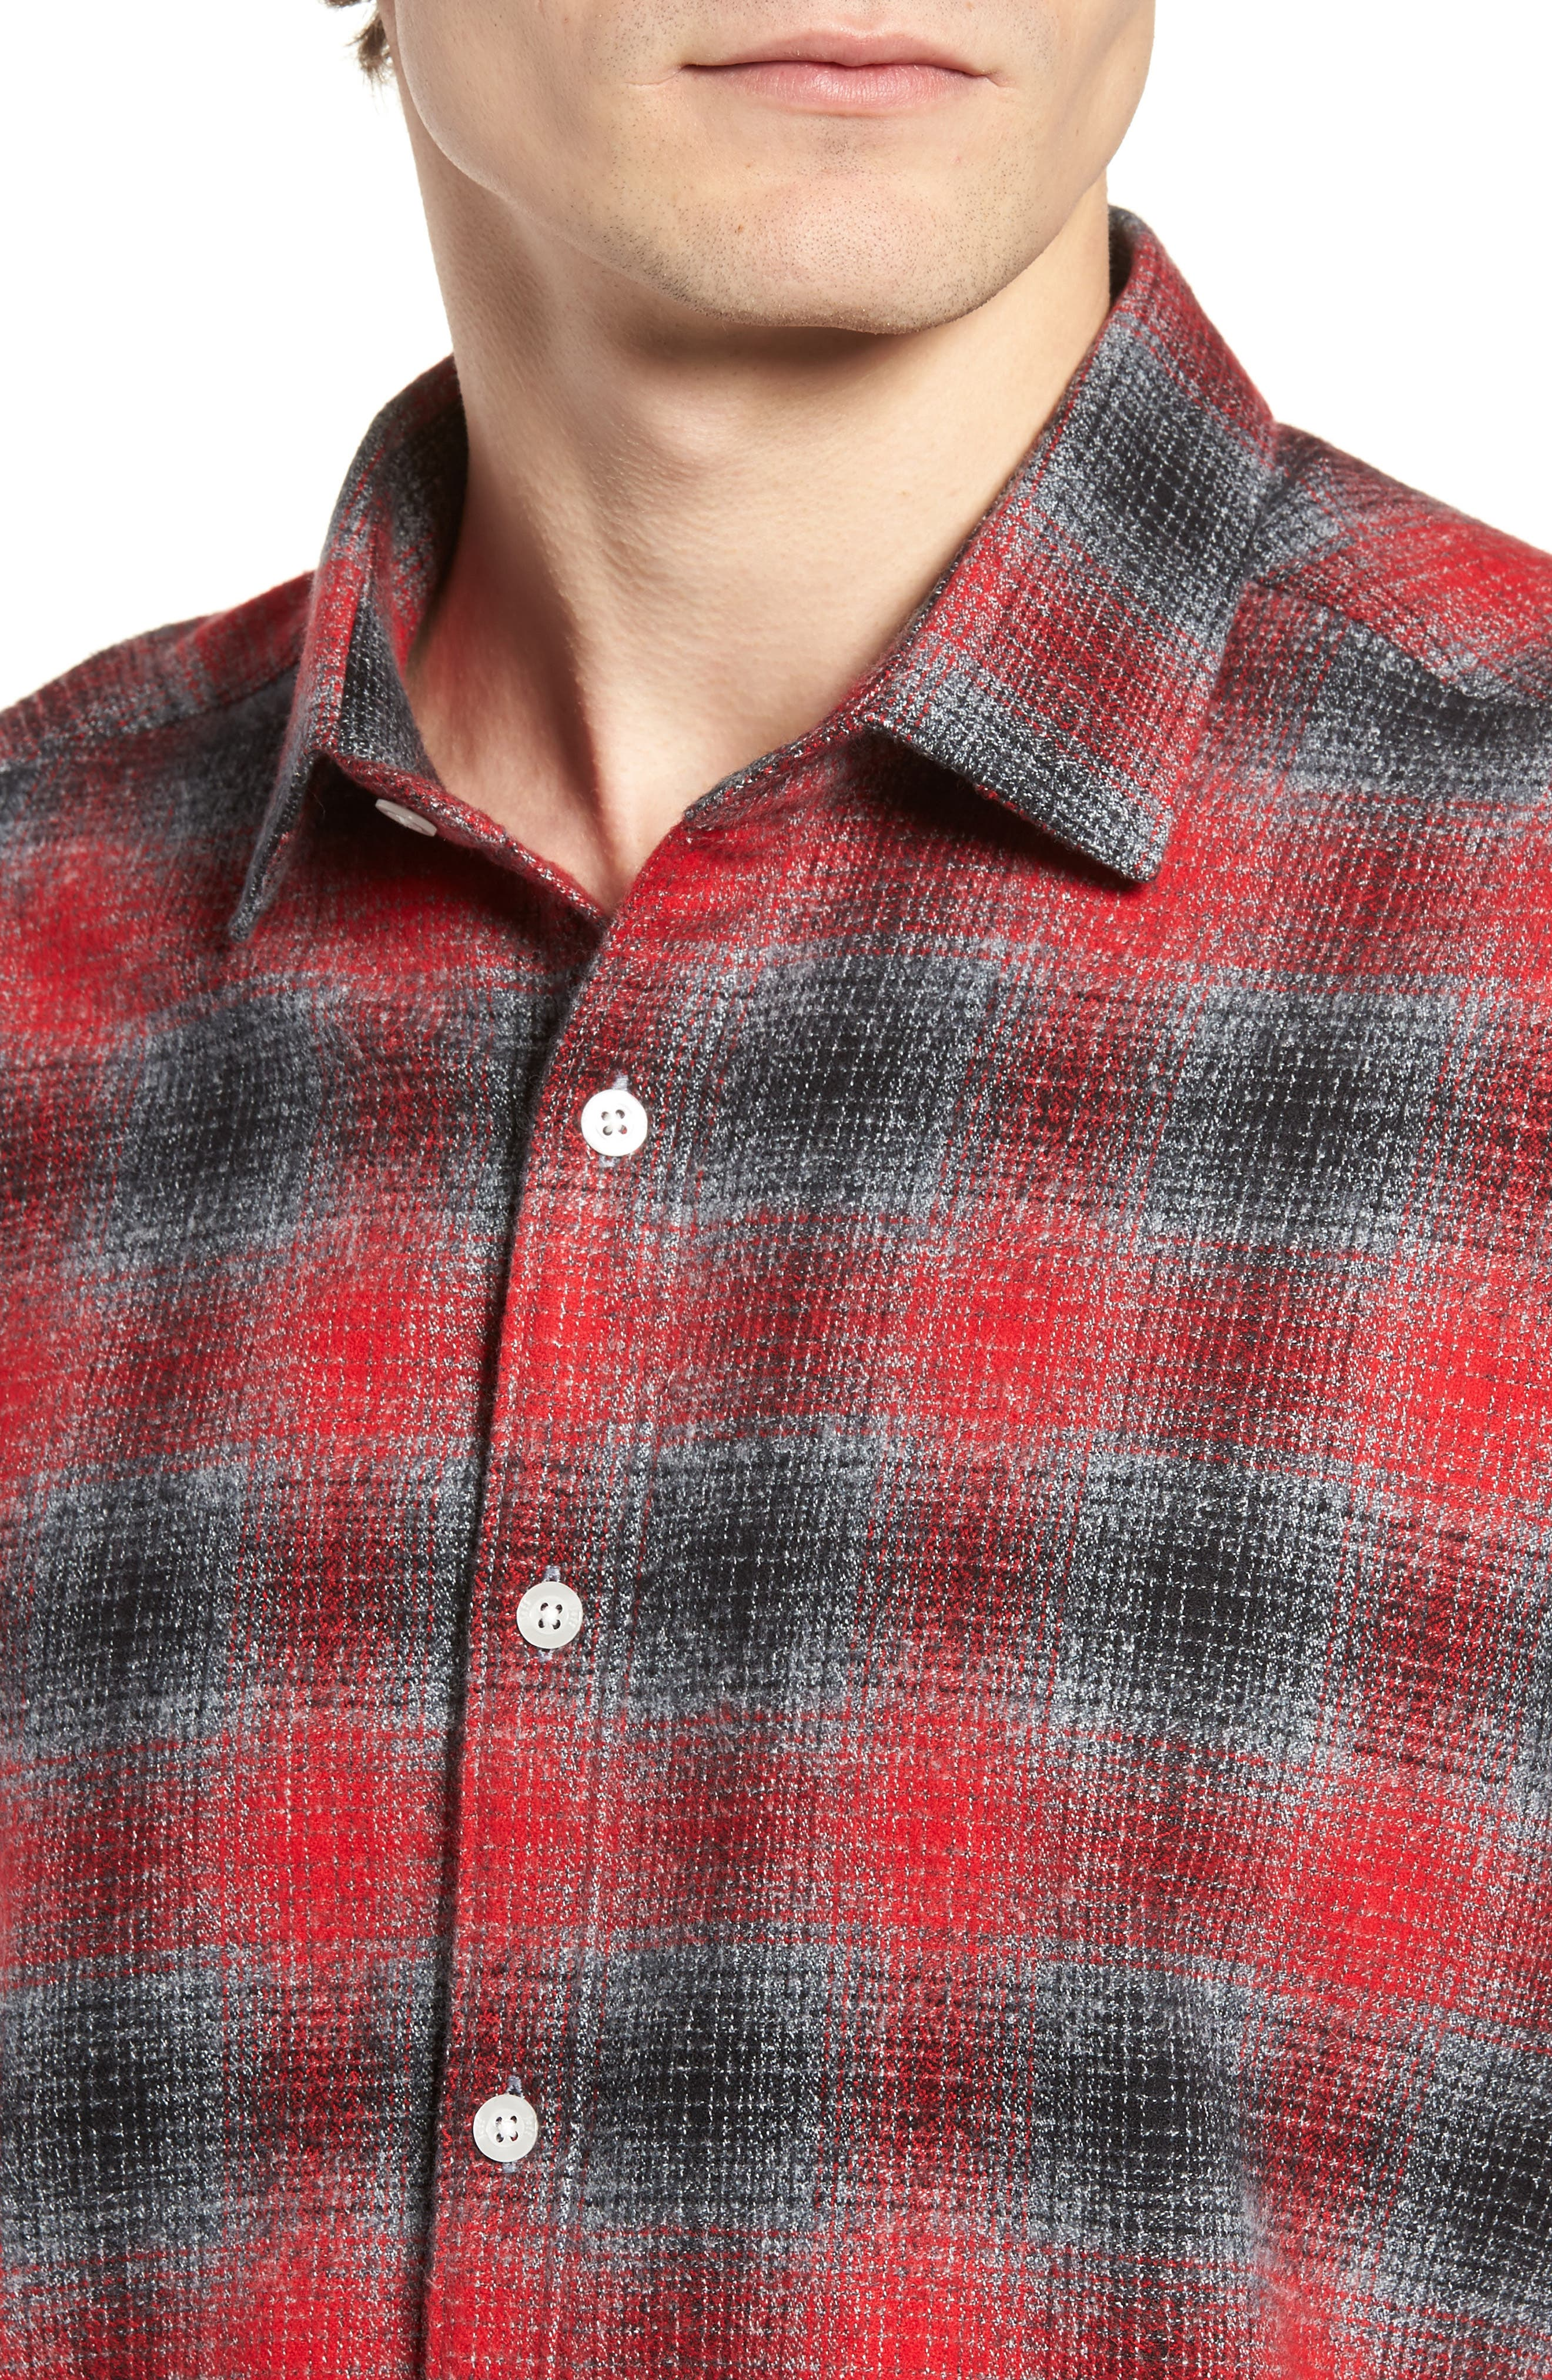 Stowe Slim Fit Plaid Sport Shirt,                             Alternate thumbnail 4, color,                             Platnium Grey